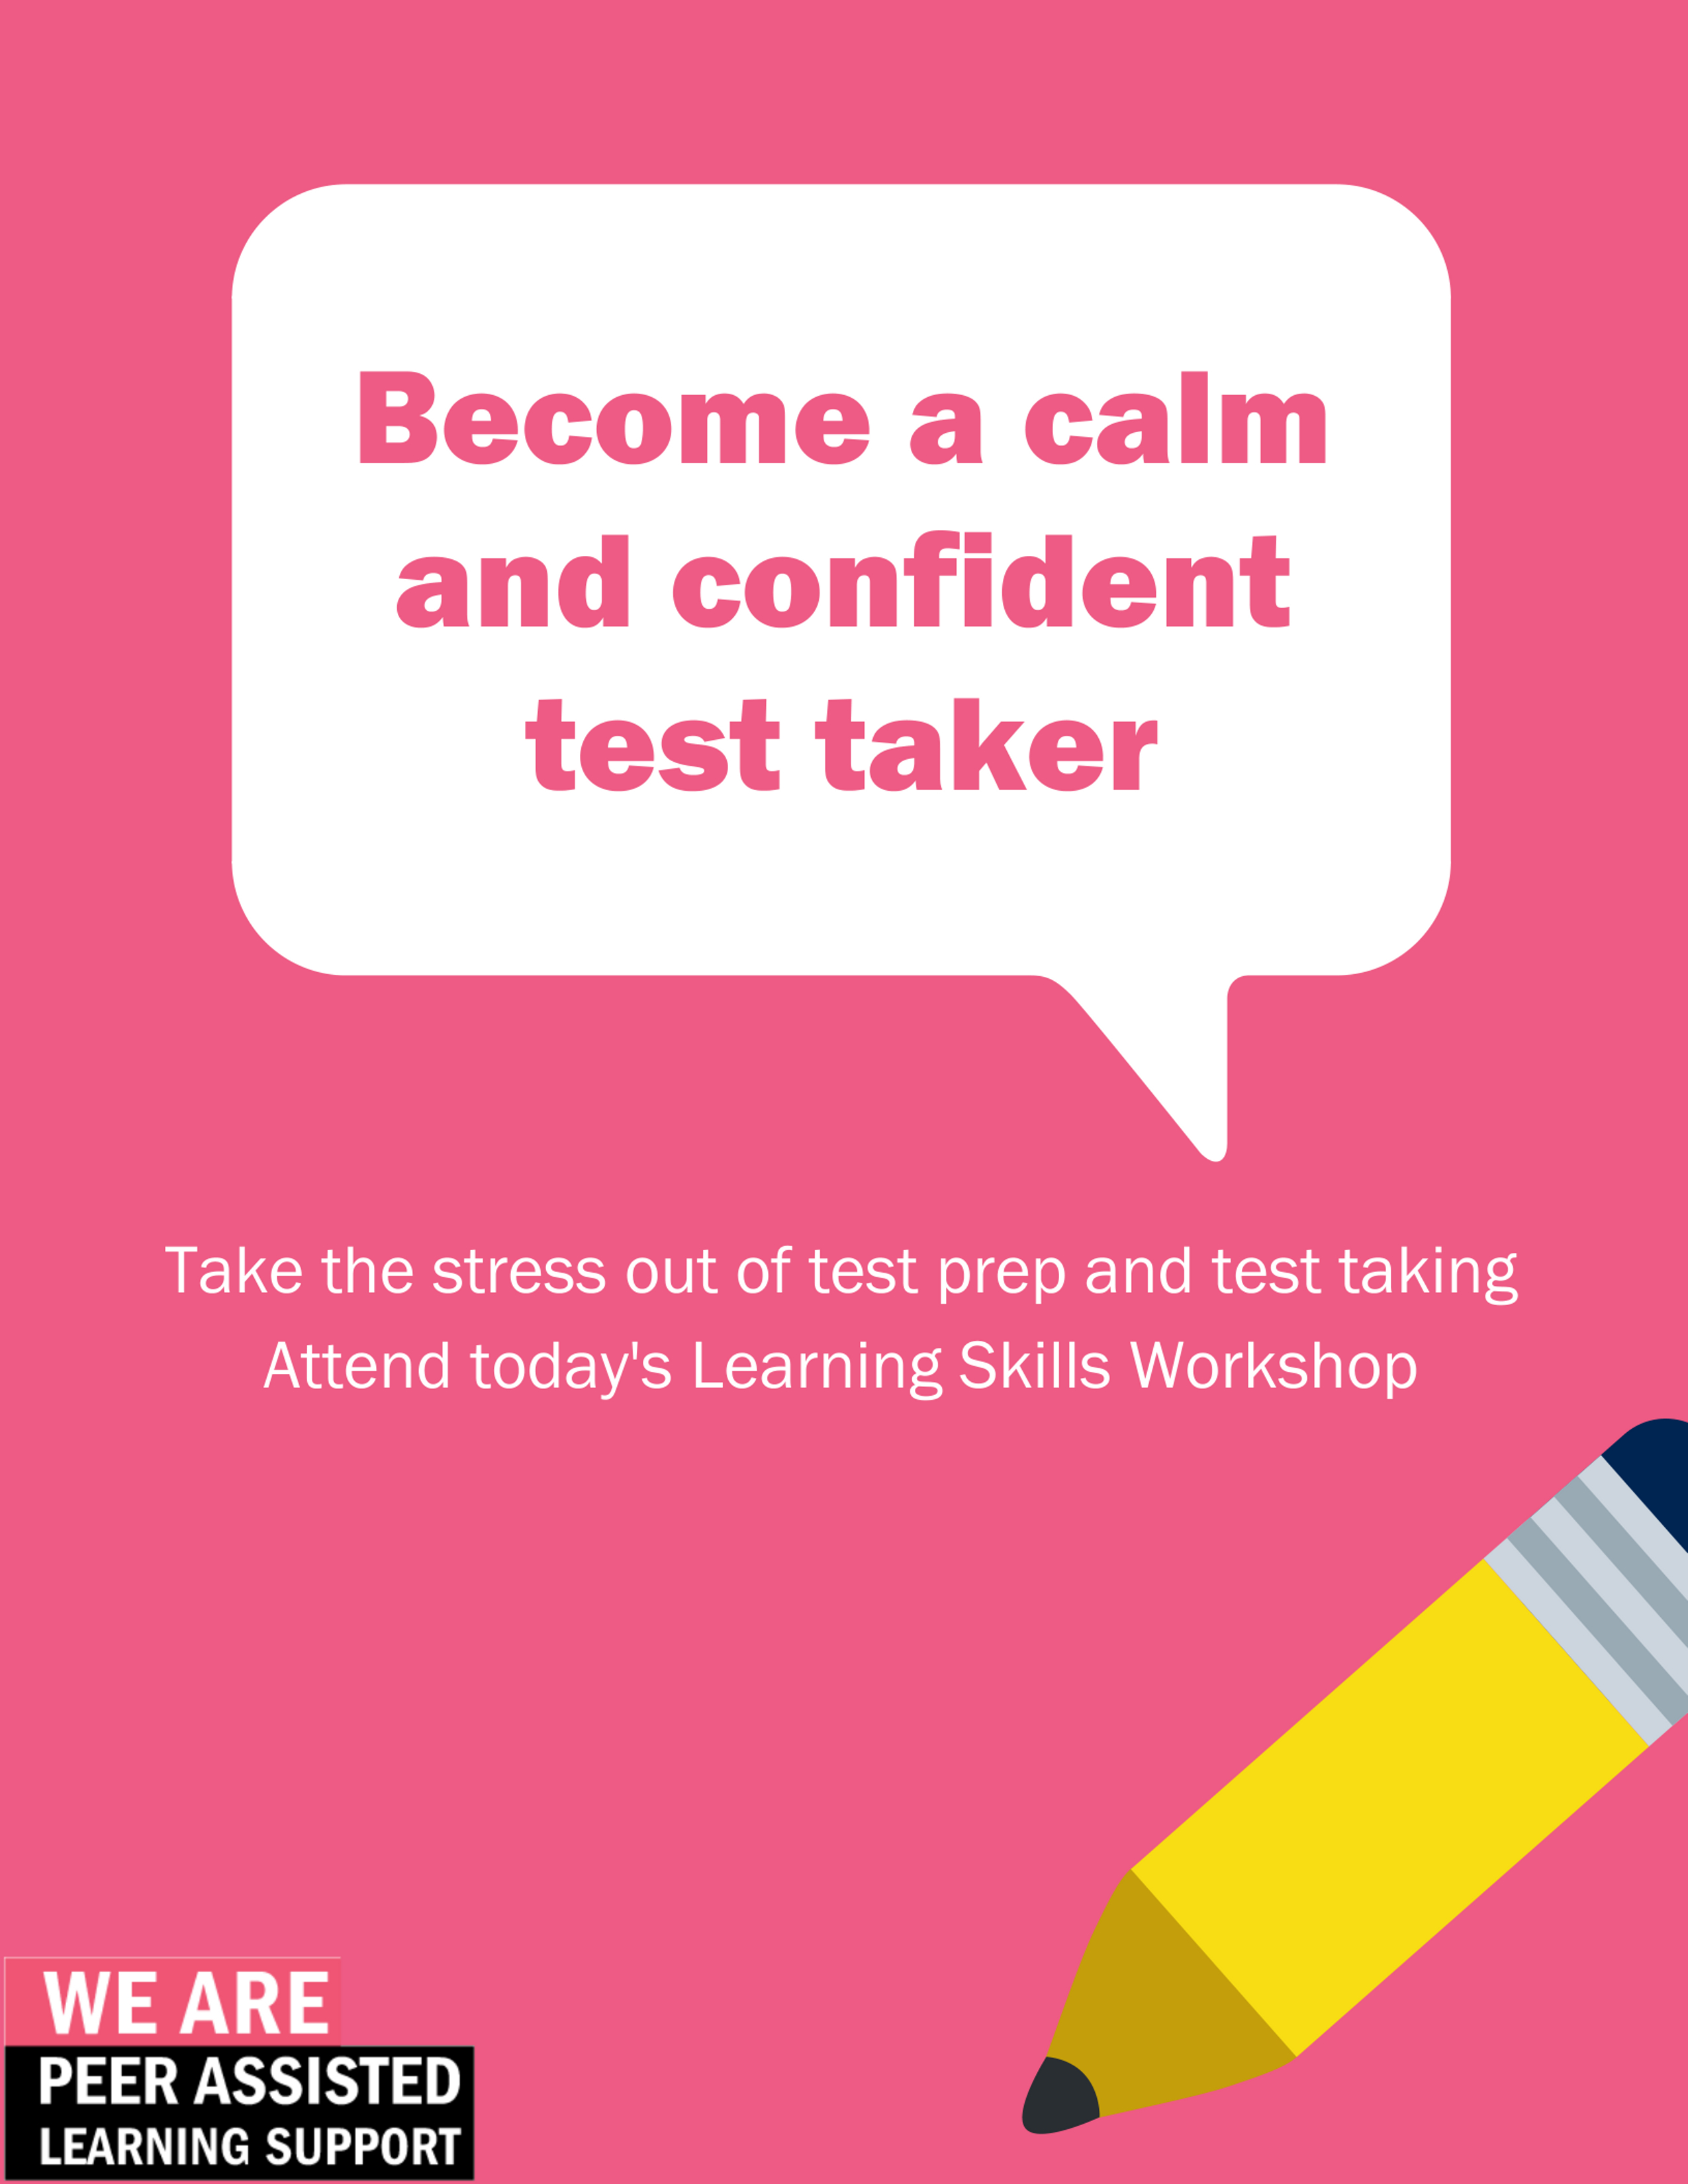 Learn ways to become a calm and confident test taker.